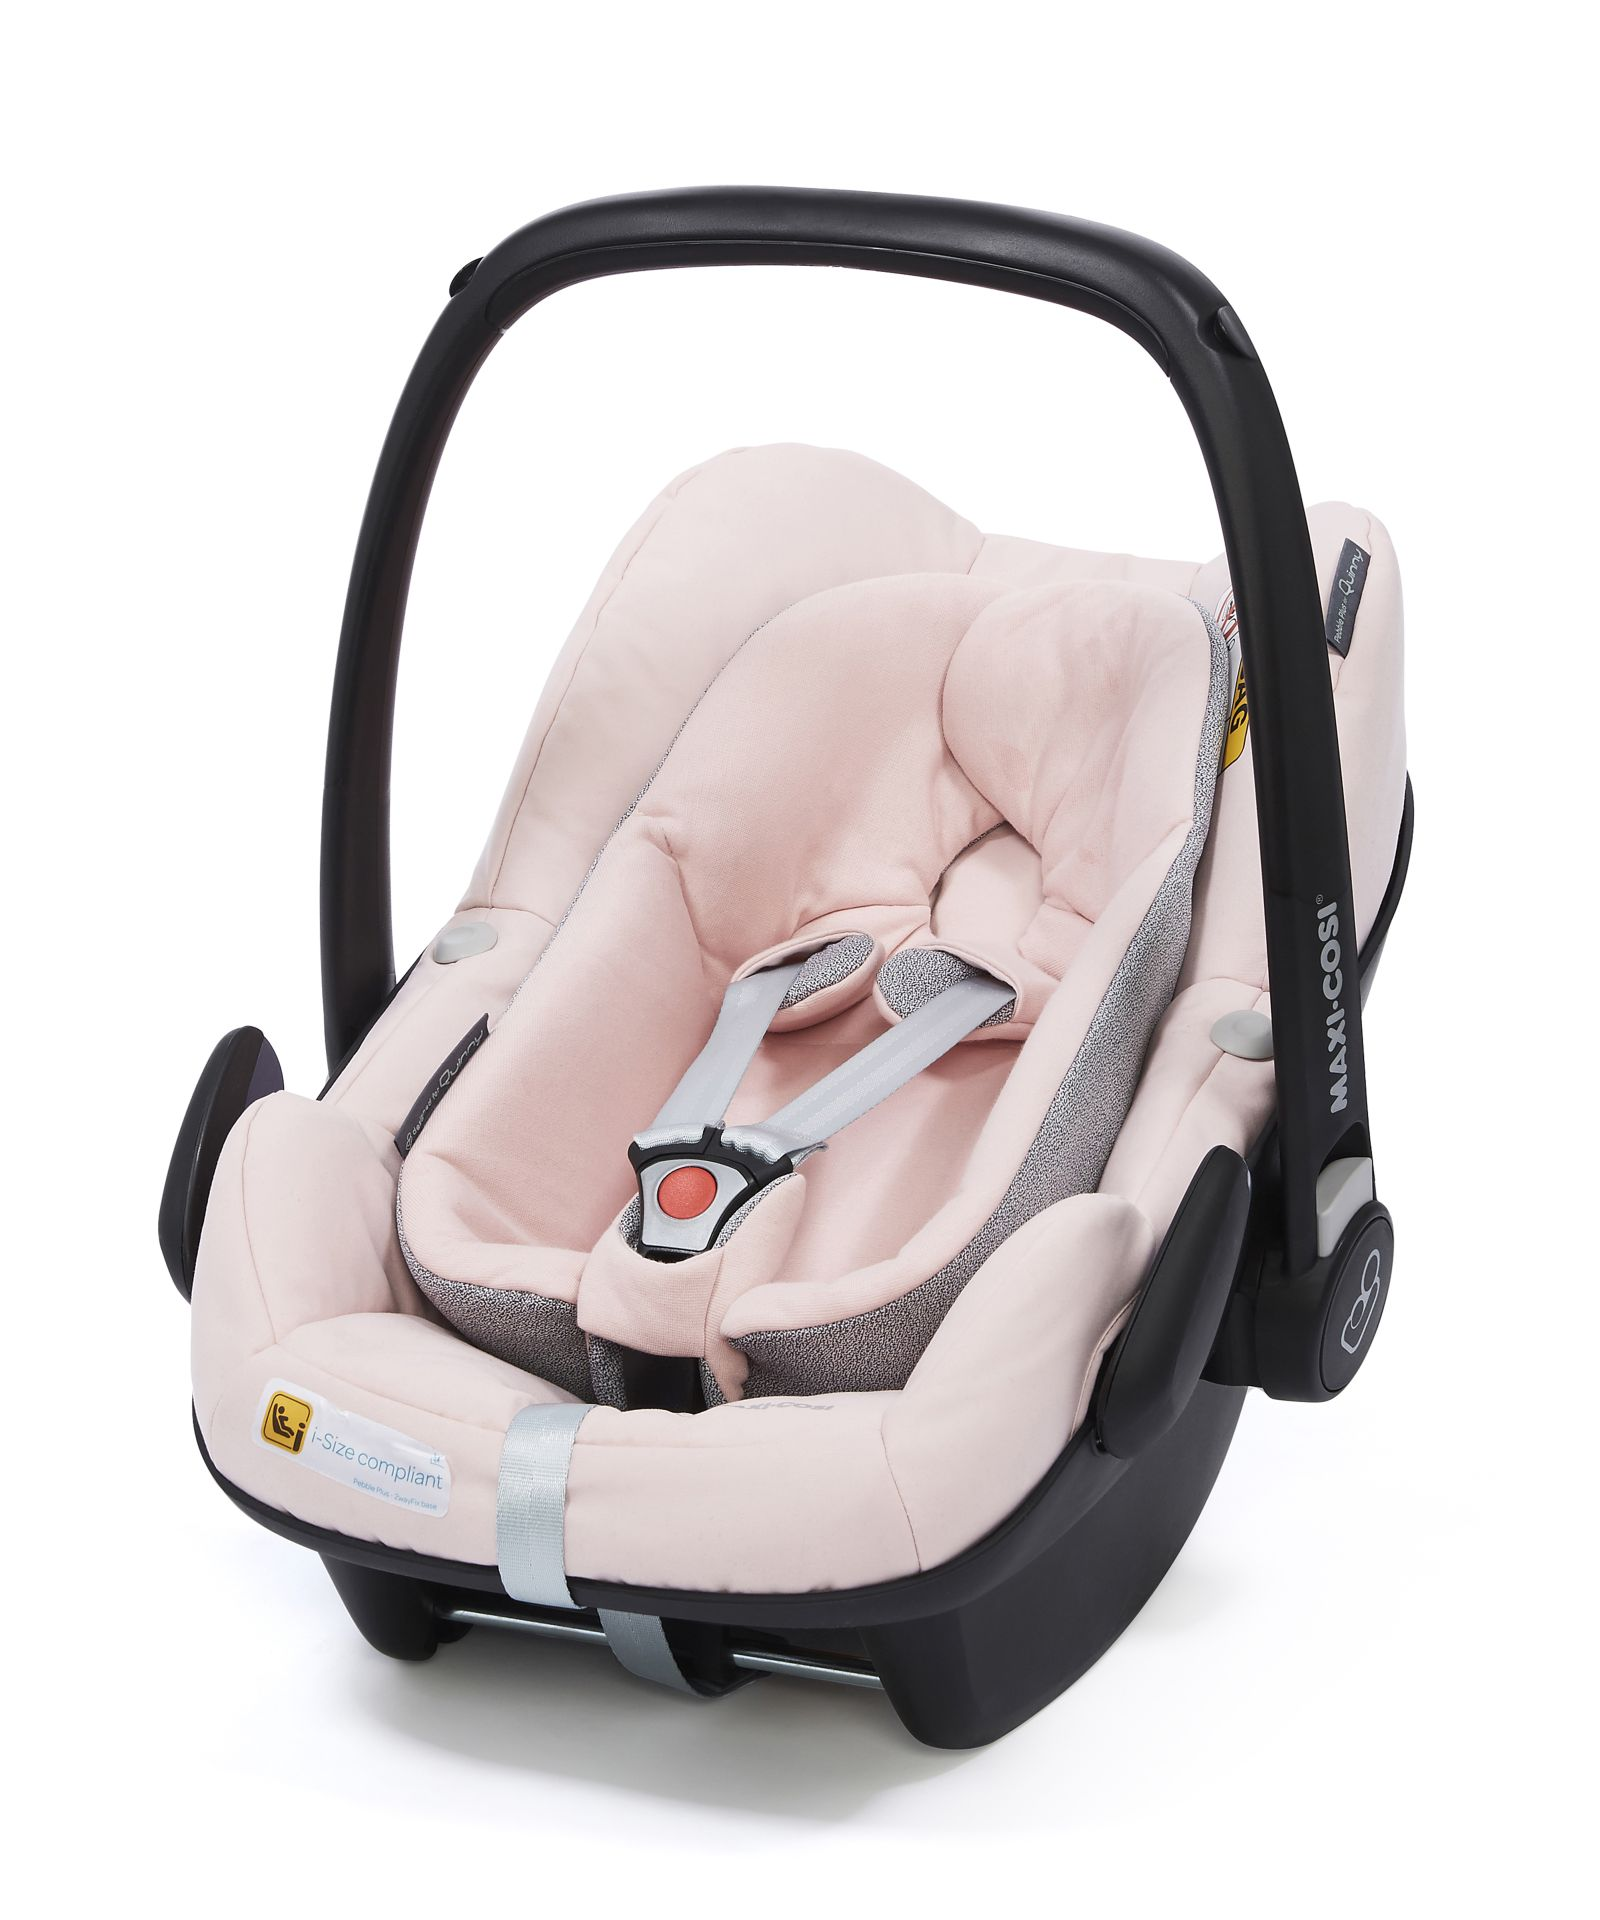 maxi cosi infant car seat pebble plus 2018 blush buy at kidsroom car seats. Black Bedroom Furniture Sets. Home Design Ideas